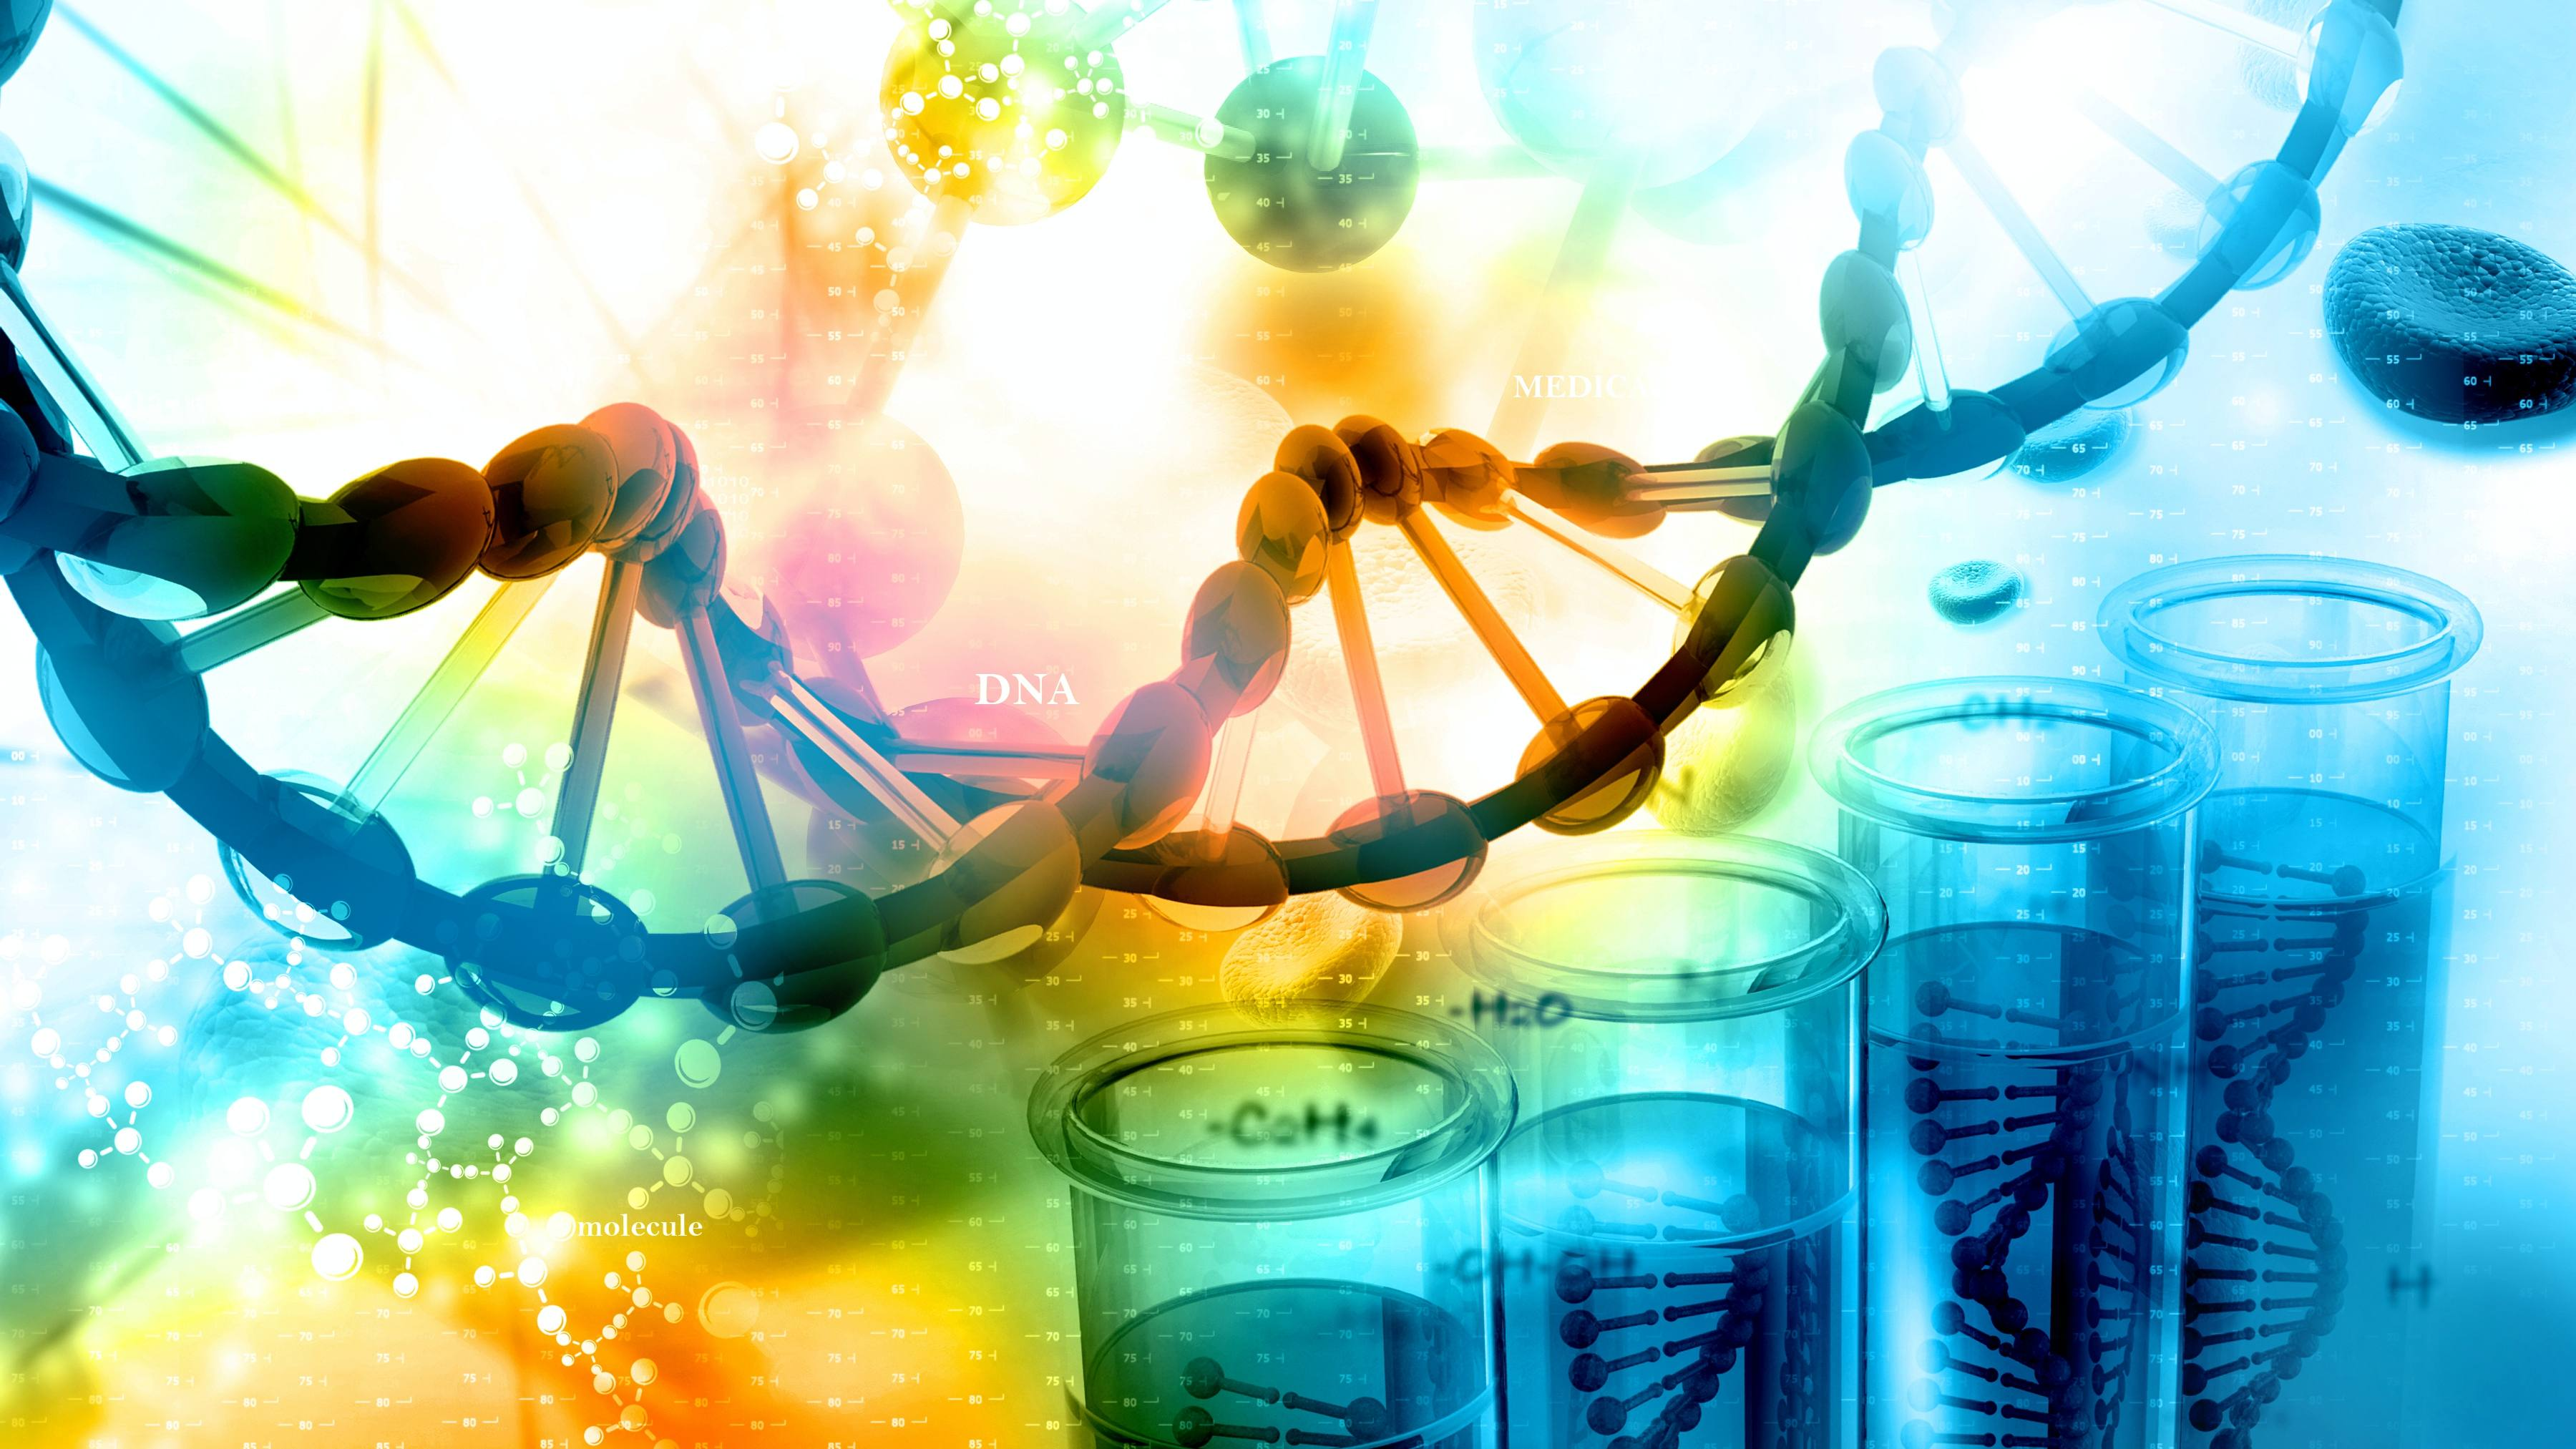 DNA helix on the colored background. 3D illustration